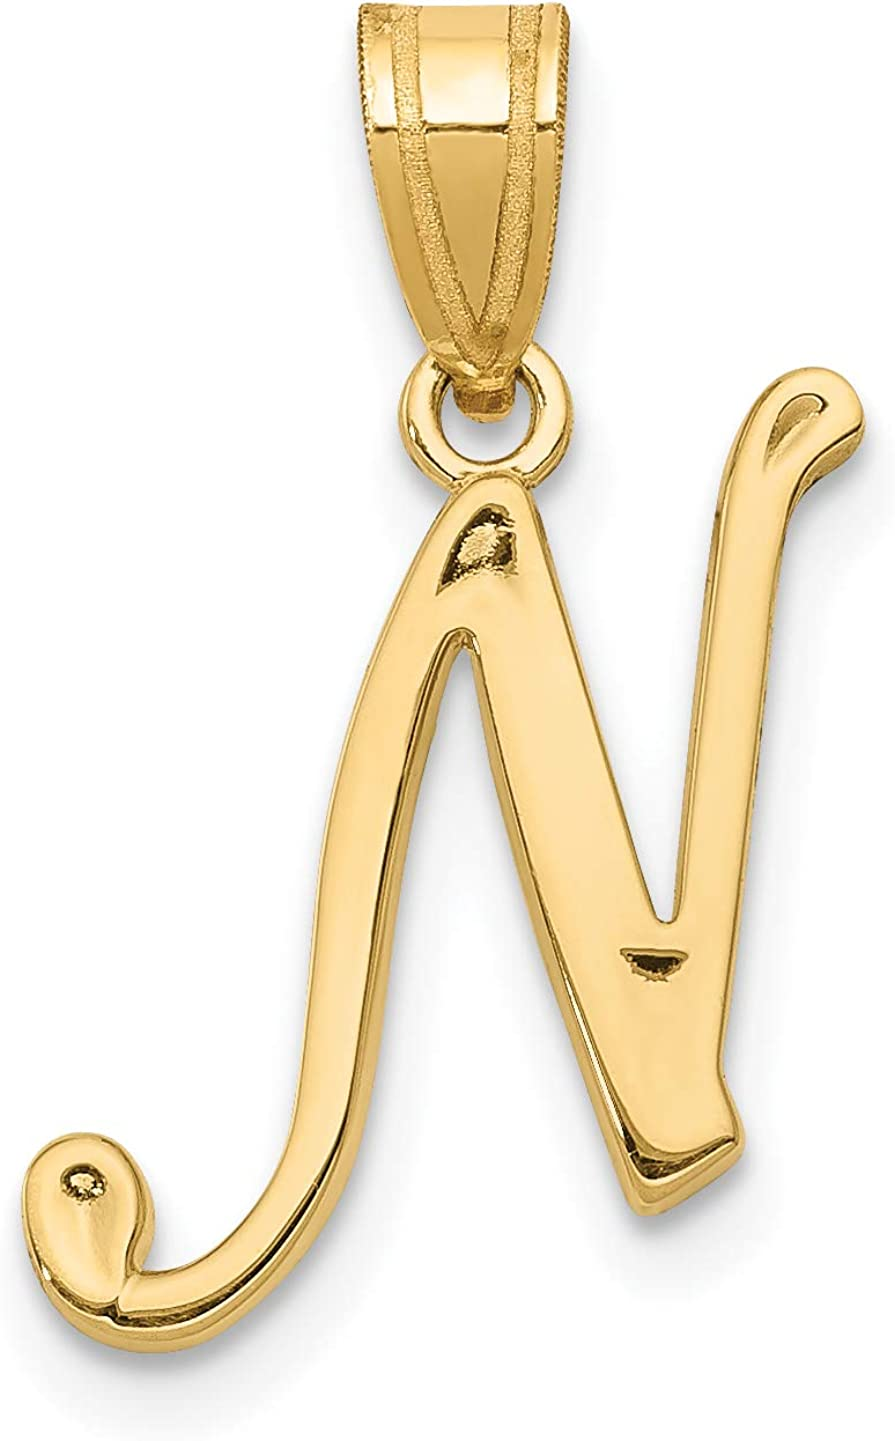 14k Yellow Gold Key Pendant on a 14K Yellow Gold Carded Rope Chain Necklace